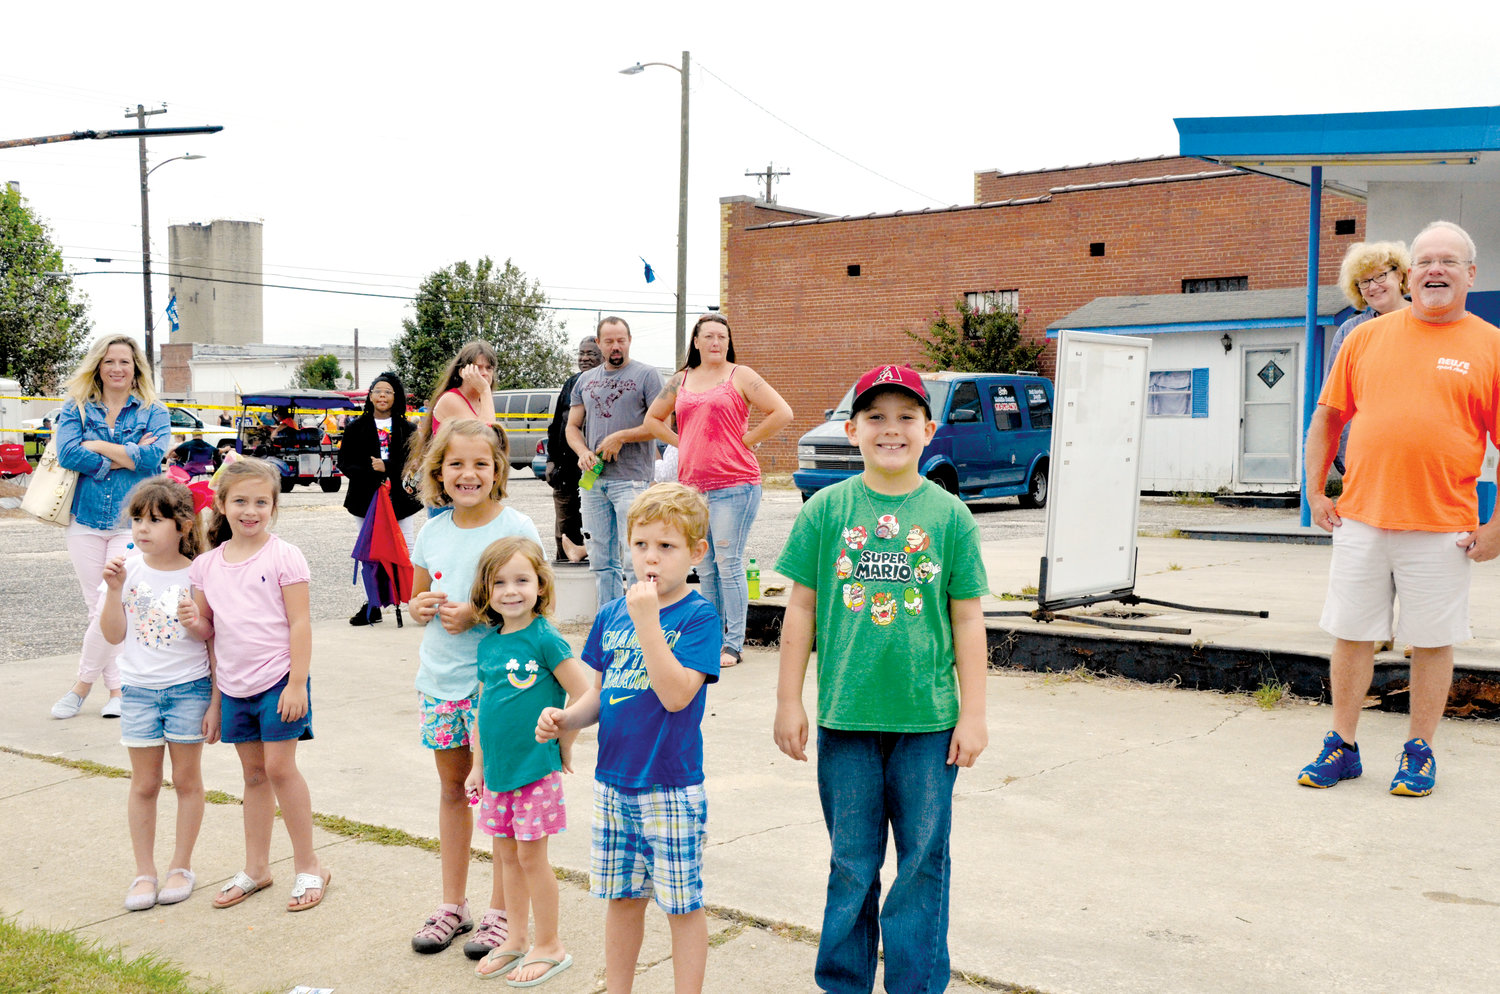 Children eagerly wait for their chance to nab some candy during Saturday's Denim Days Parade. Pictured, from left, are Baylee Pleasant, Allie Beasley, Lyla Murphy, Linley Murphy, Keaton Murphy and Holden Murphy.